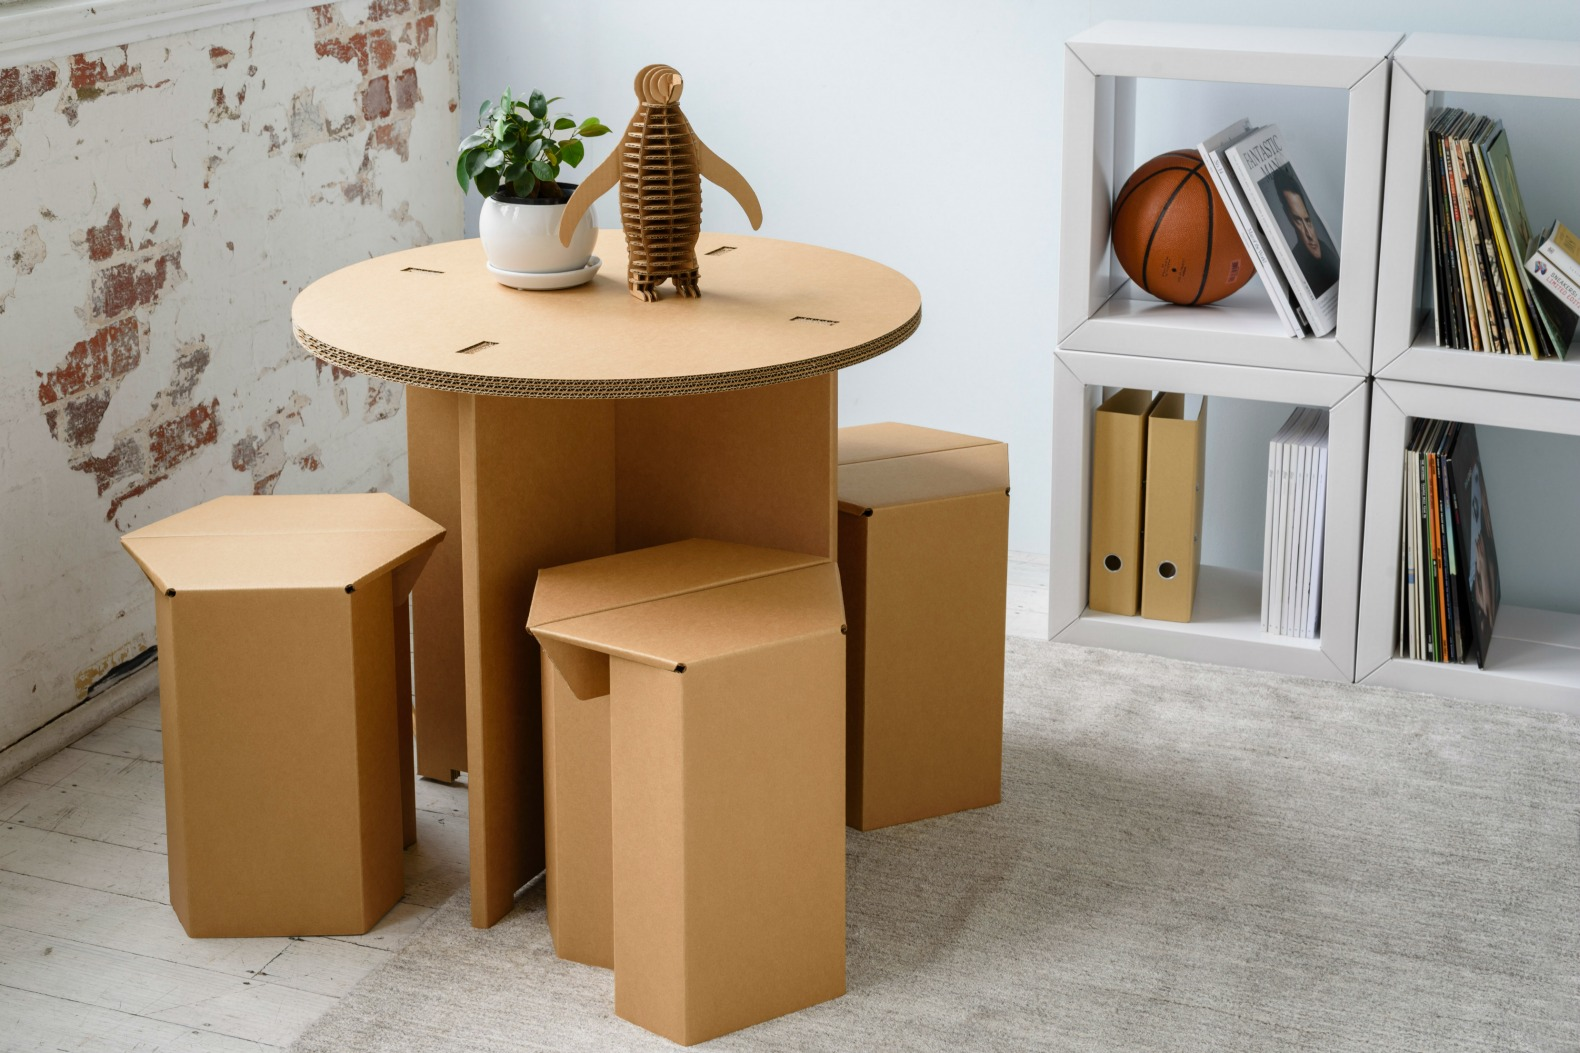 Karton Creates Ultra-durable Cardboard Furniture For Every Room In Your Home